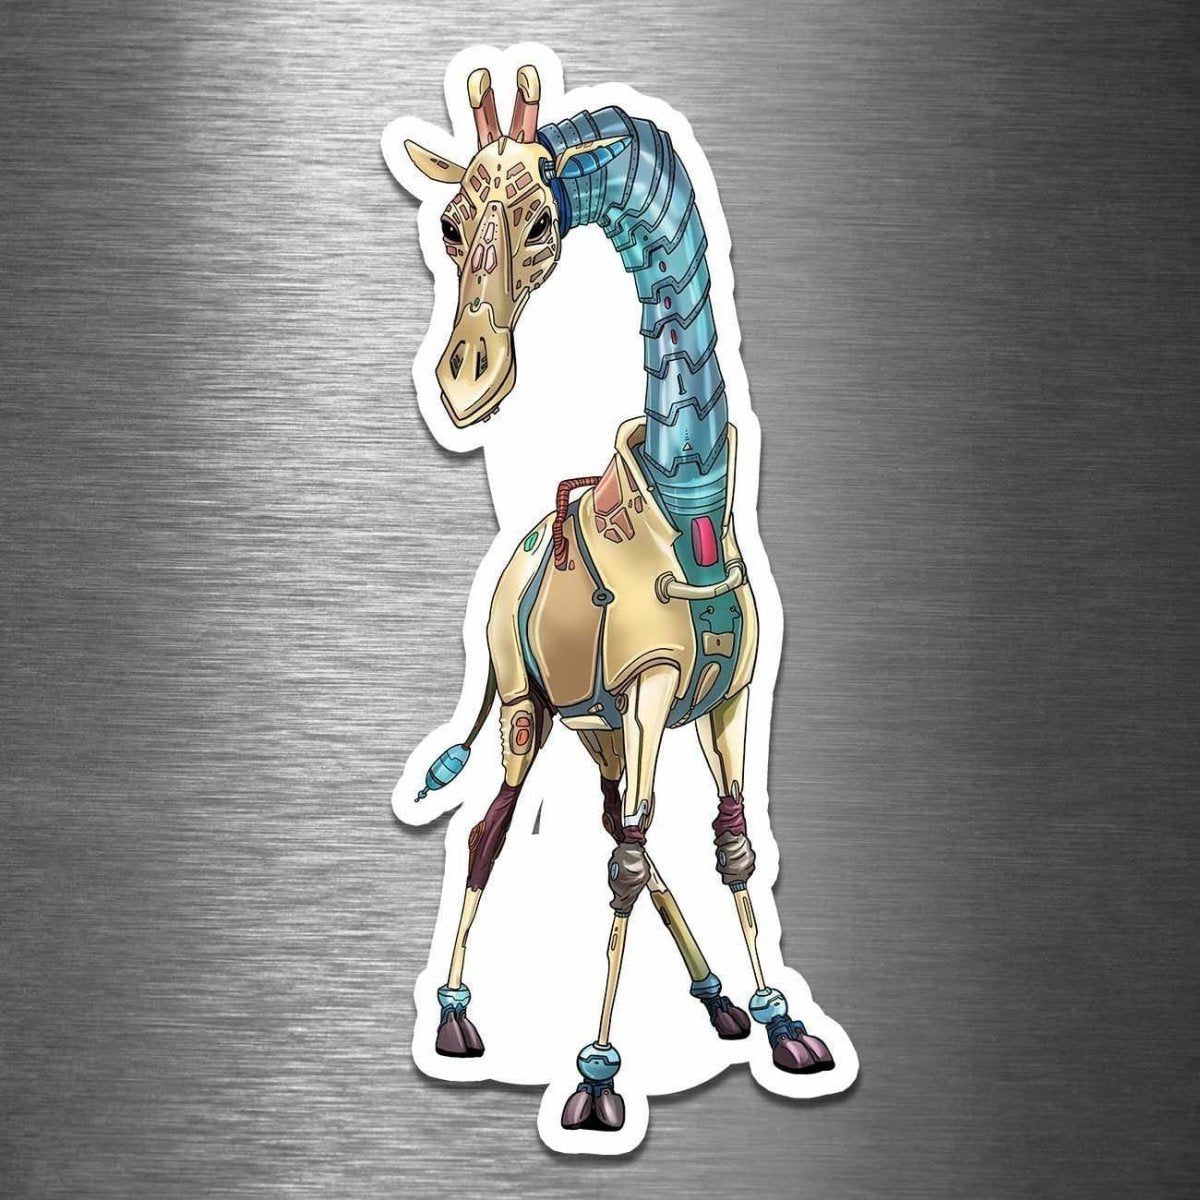 Giraffe Robot - Vinyl Sticker - Dan Pearce Sticker Shop